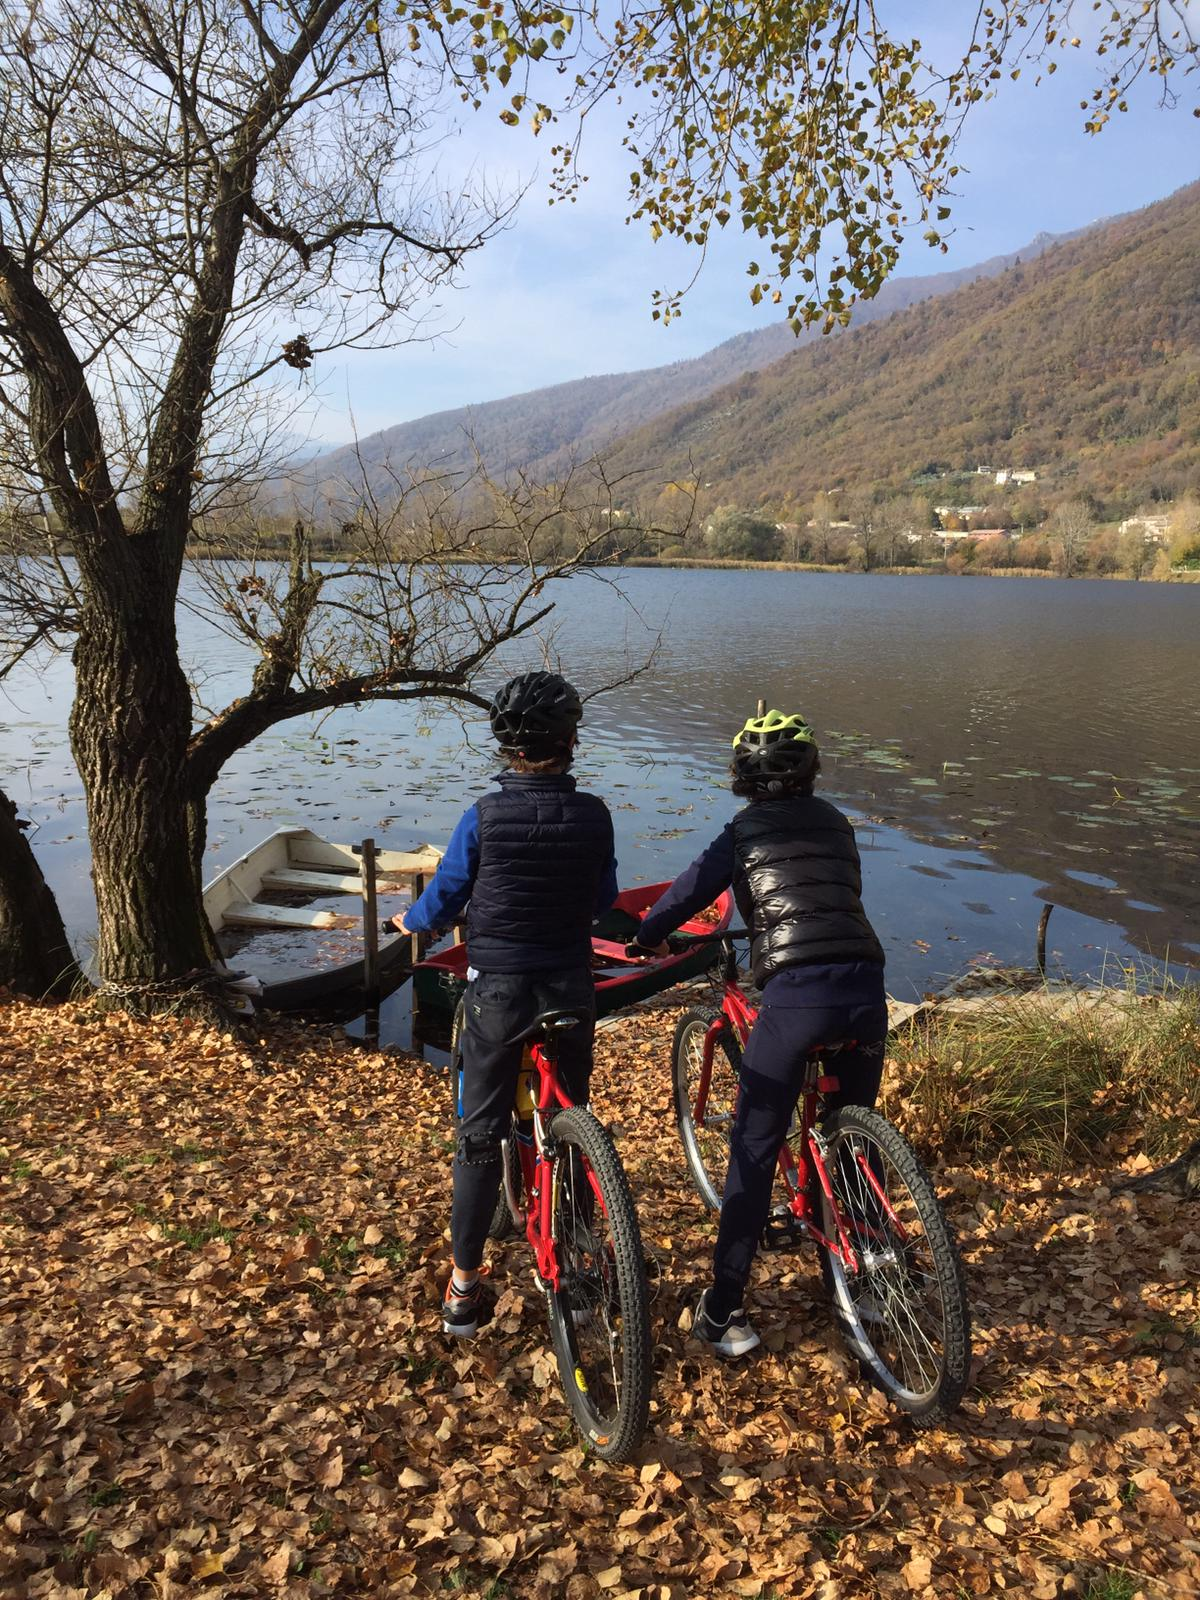 21.11.2020 Weekend sui nostri laghi